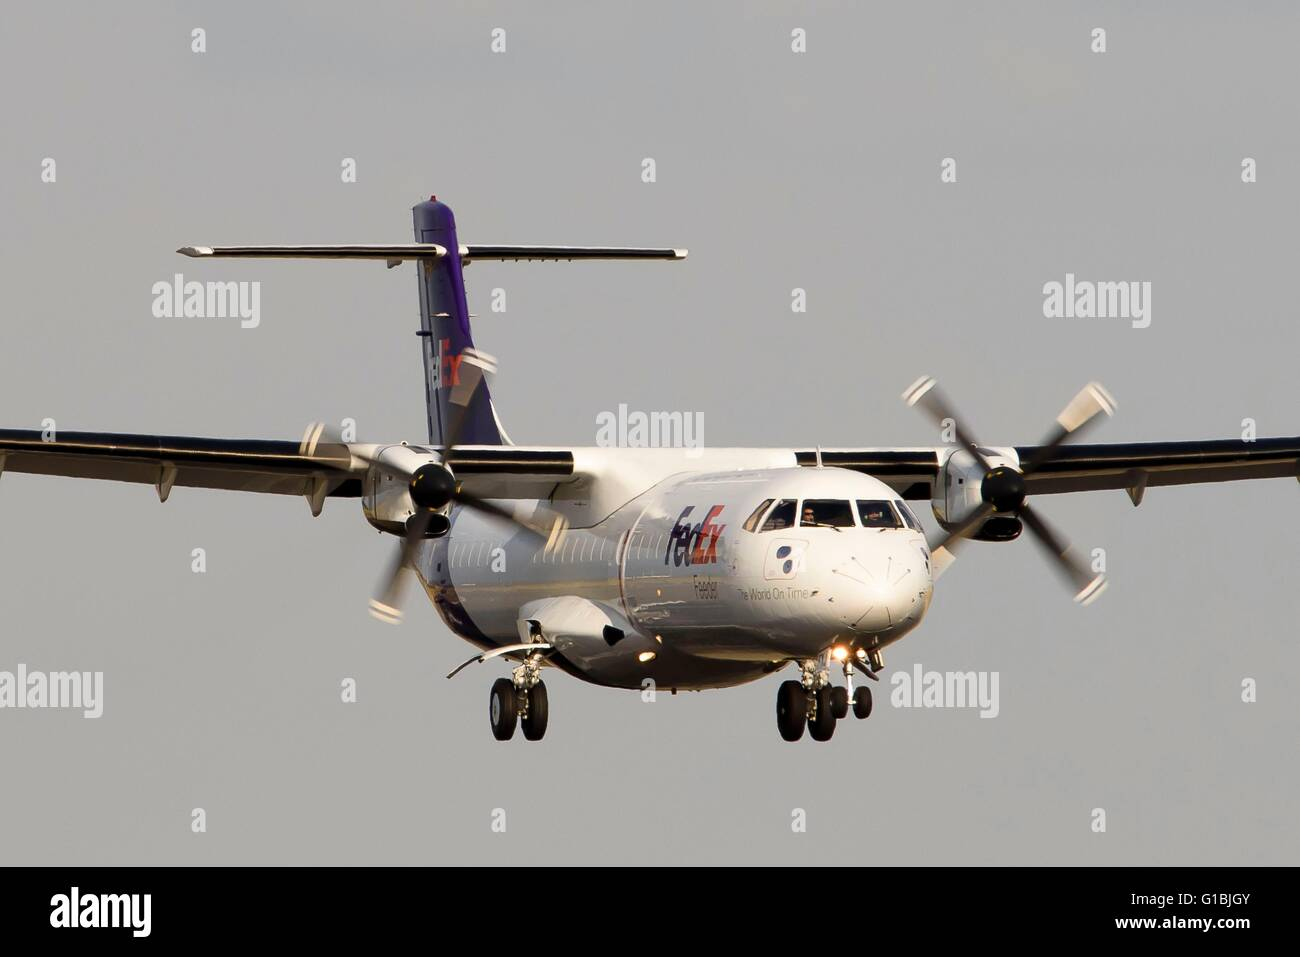 France, Val d'Oise, Roissy en France, Charles-de-Gaulle airport, Turboprop powered FedEx ATR aircraft approaches - Stock Image